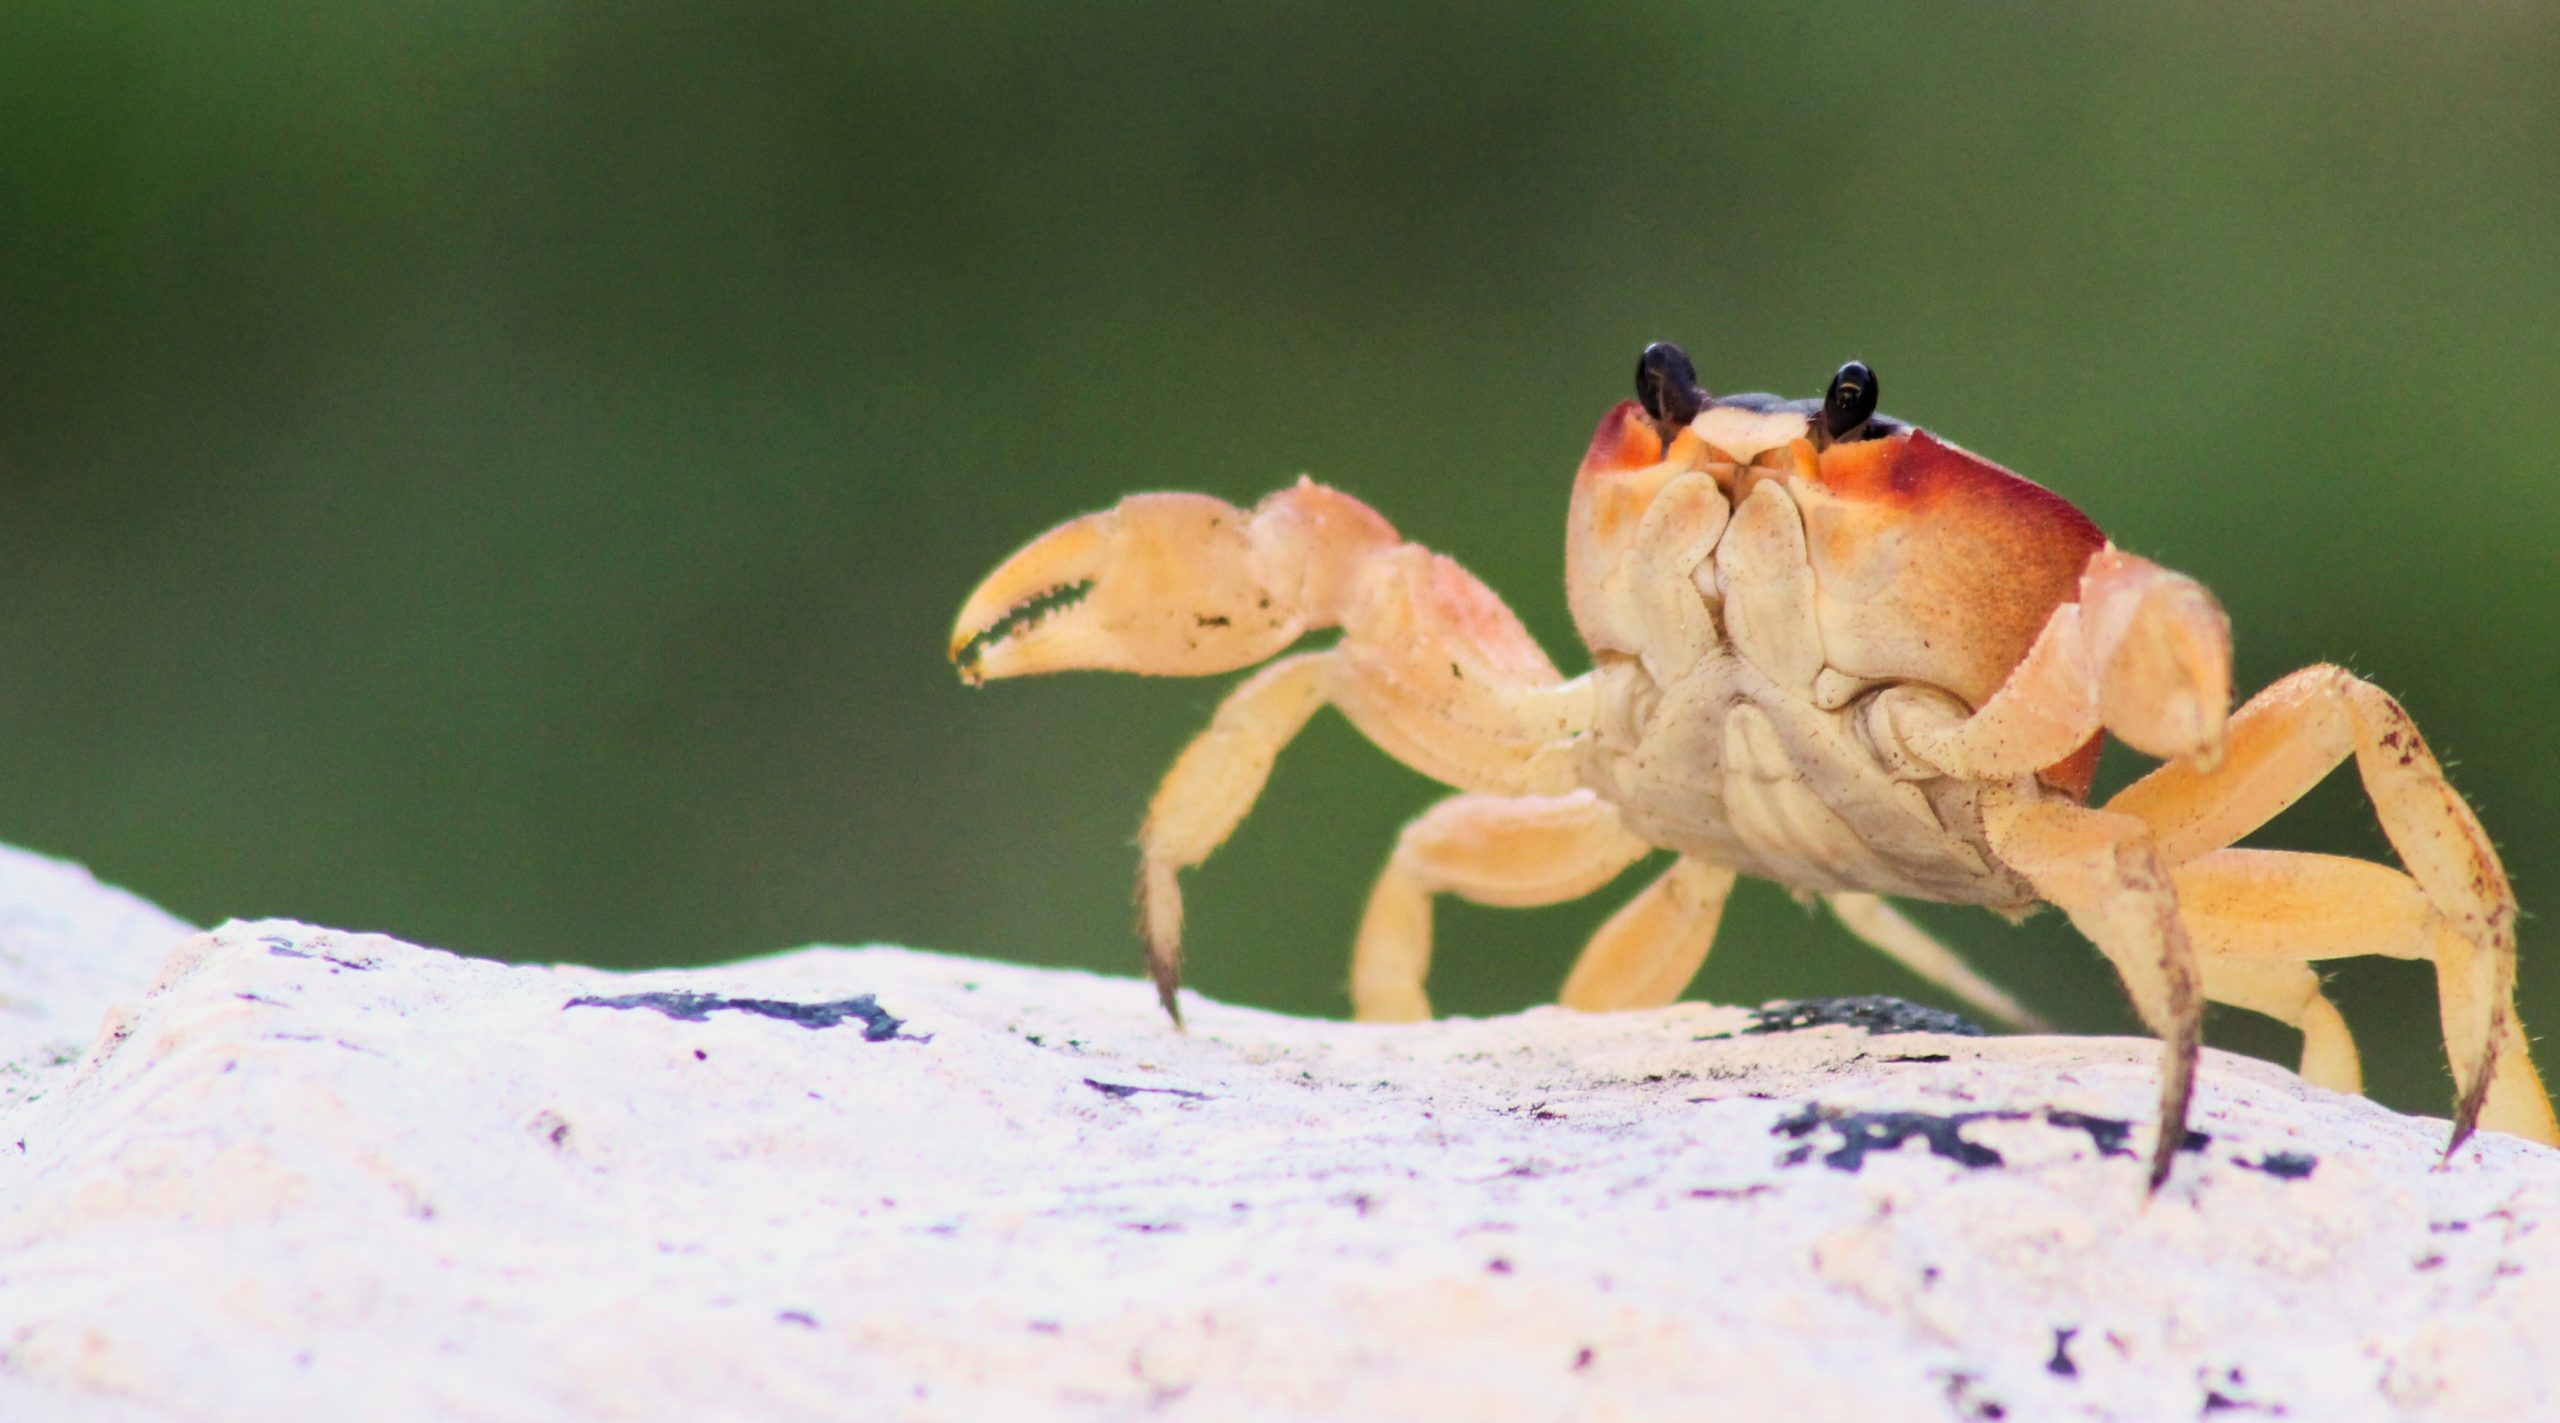 Crabby's Reef game for World Oceans Day